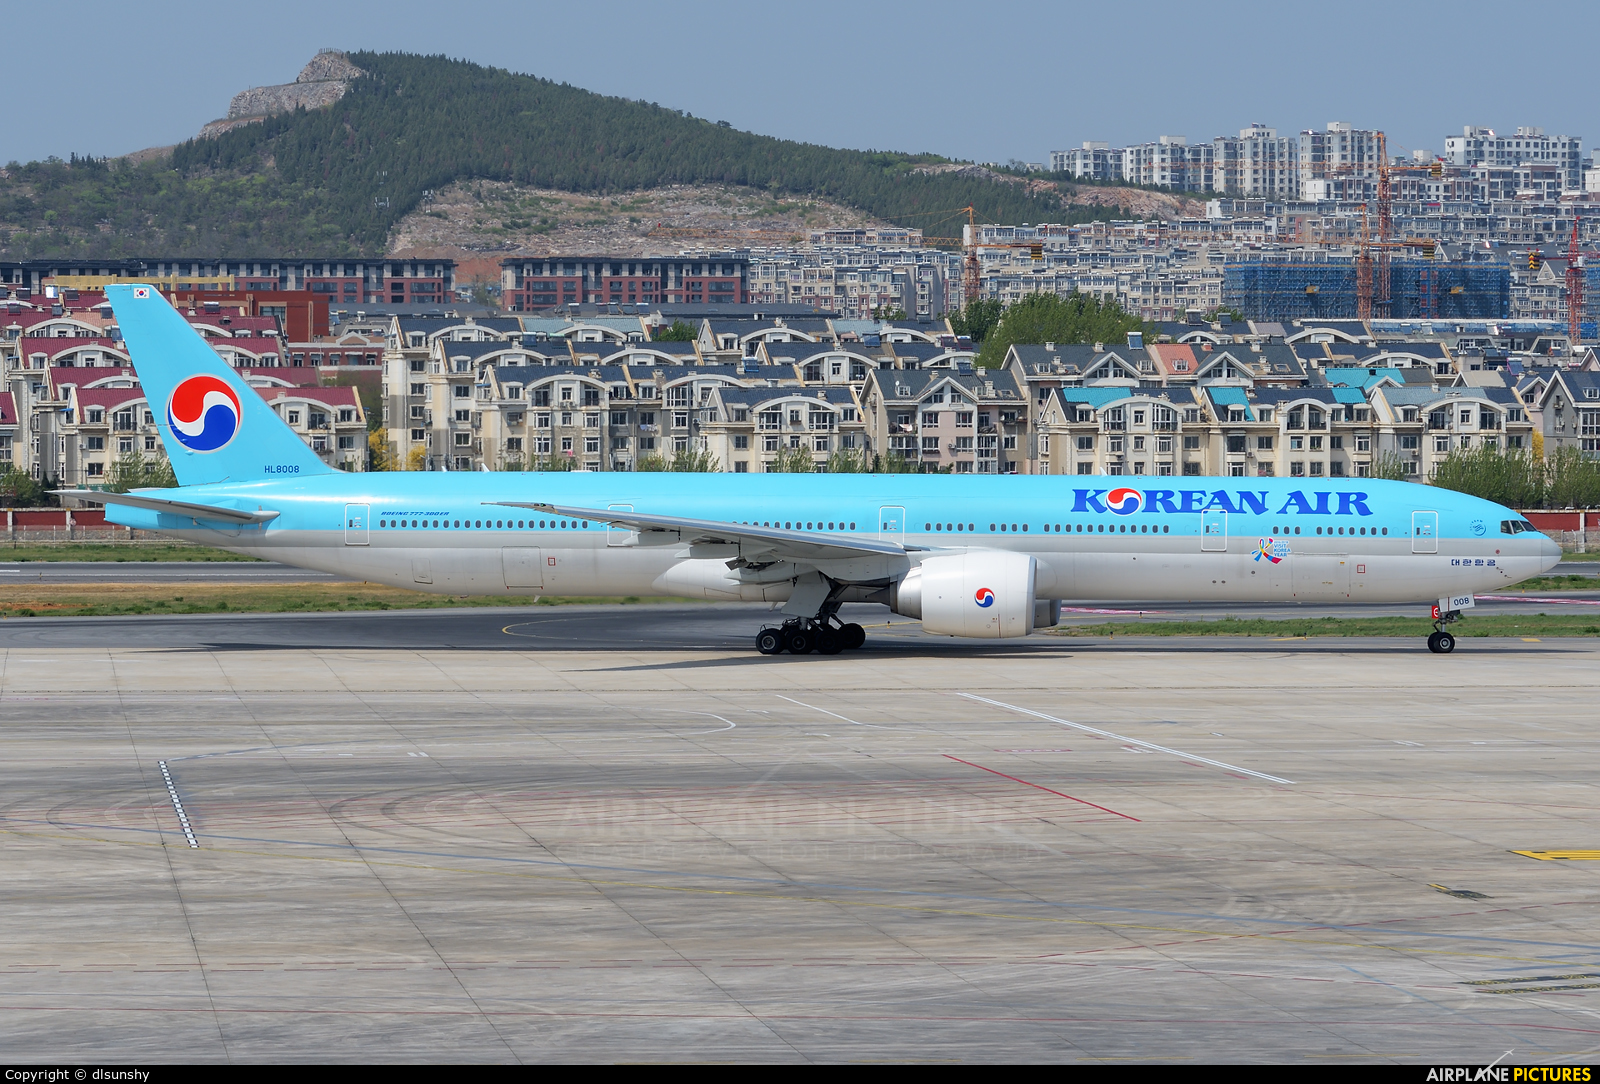 Korean Air HL8008 aircraft at Dalian Zhoushuizi Int'l